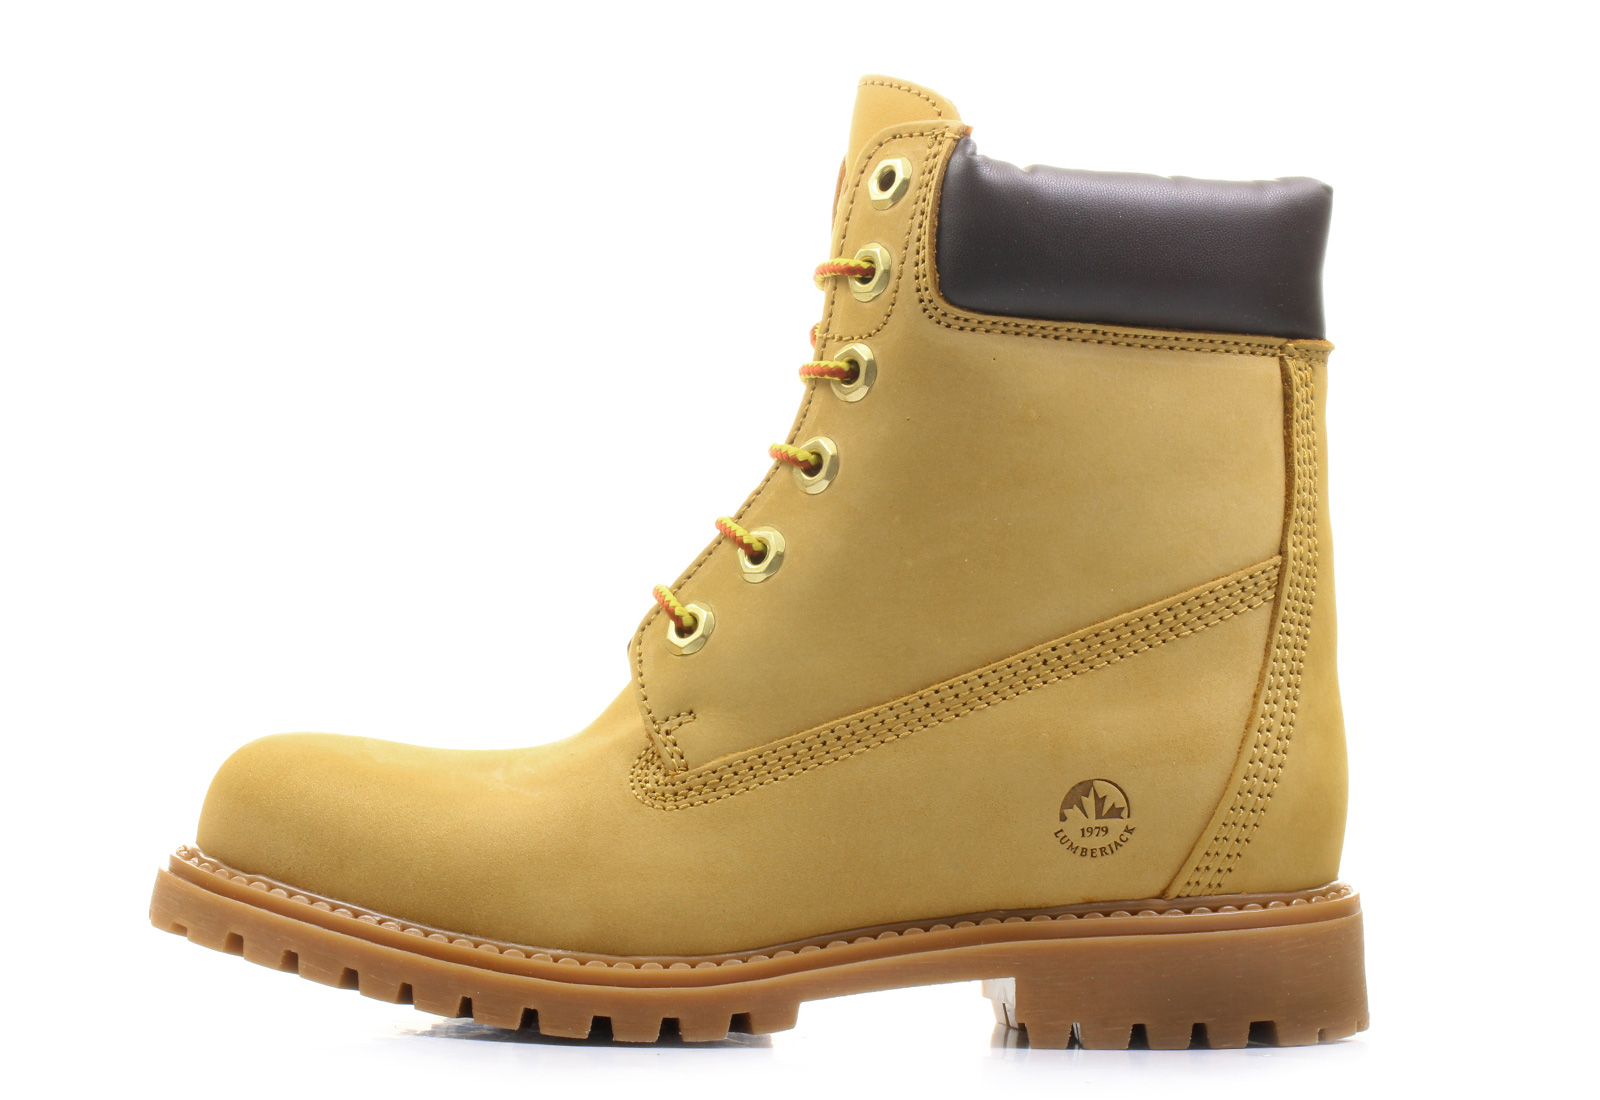 Lumberjack Boots River Wedge W01016 D01 Whe Online